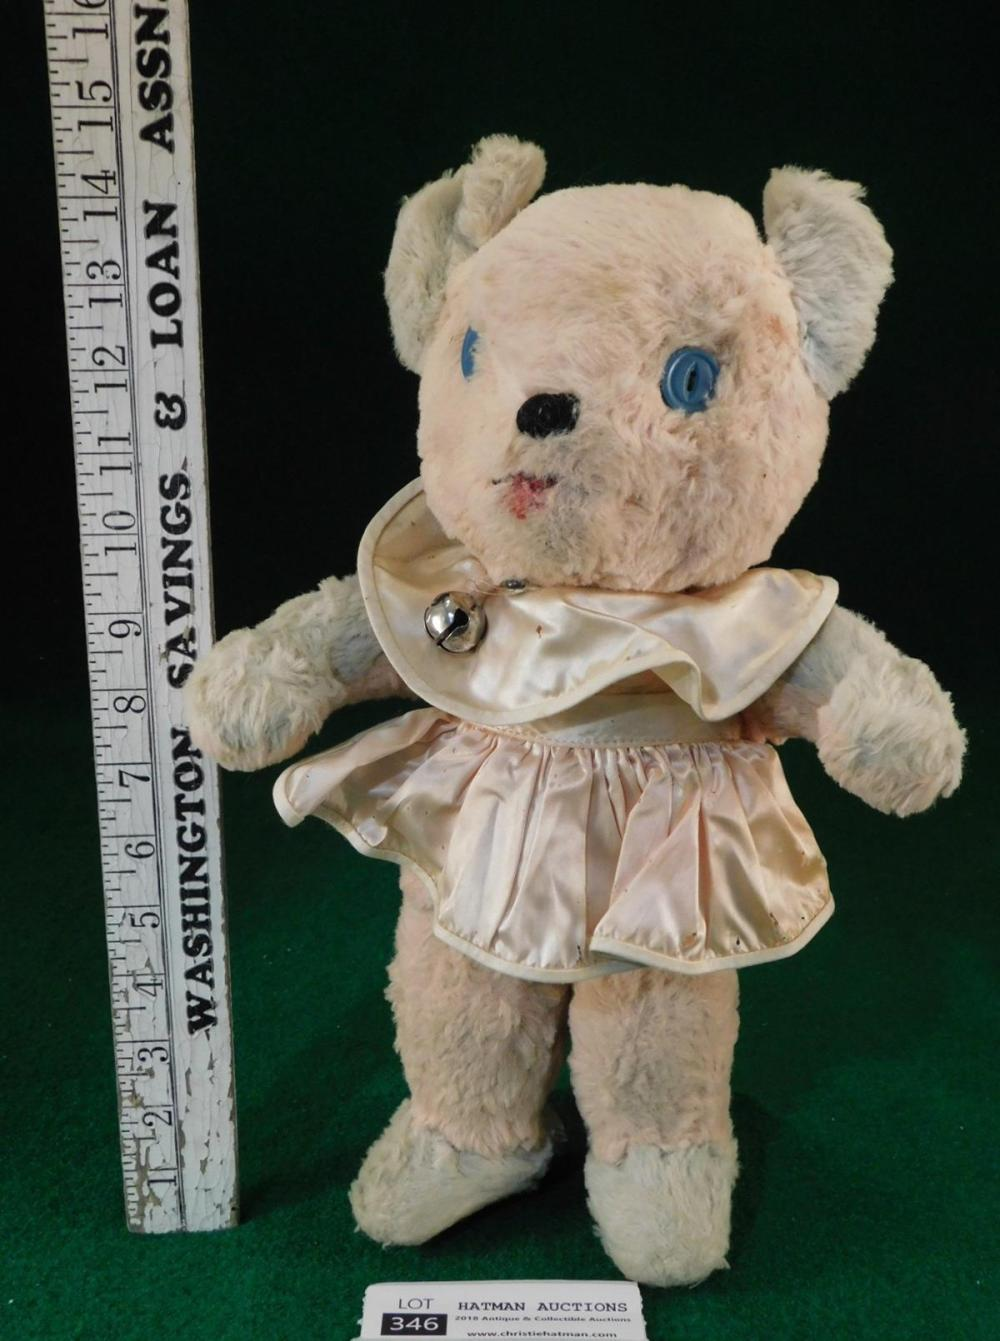 VINTAGE ANTIQUE TOY BEAR KRUGER BEAR WITH BELL